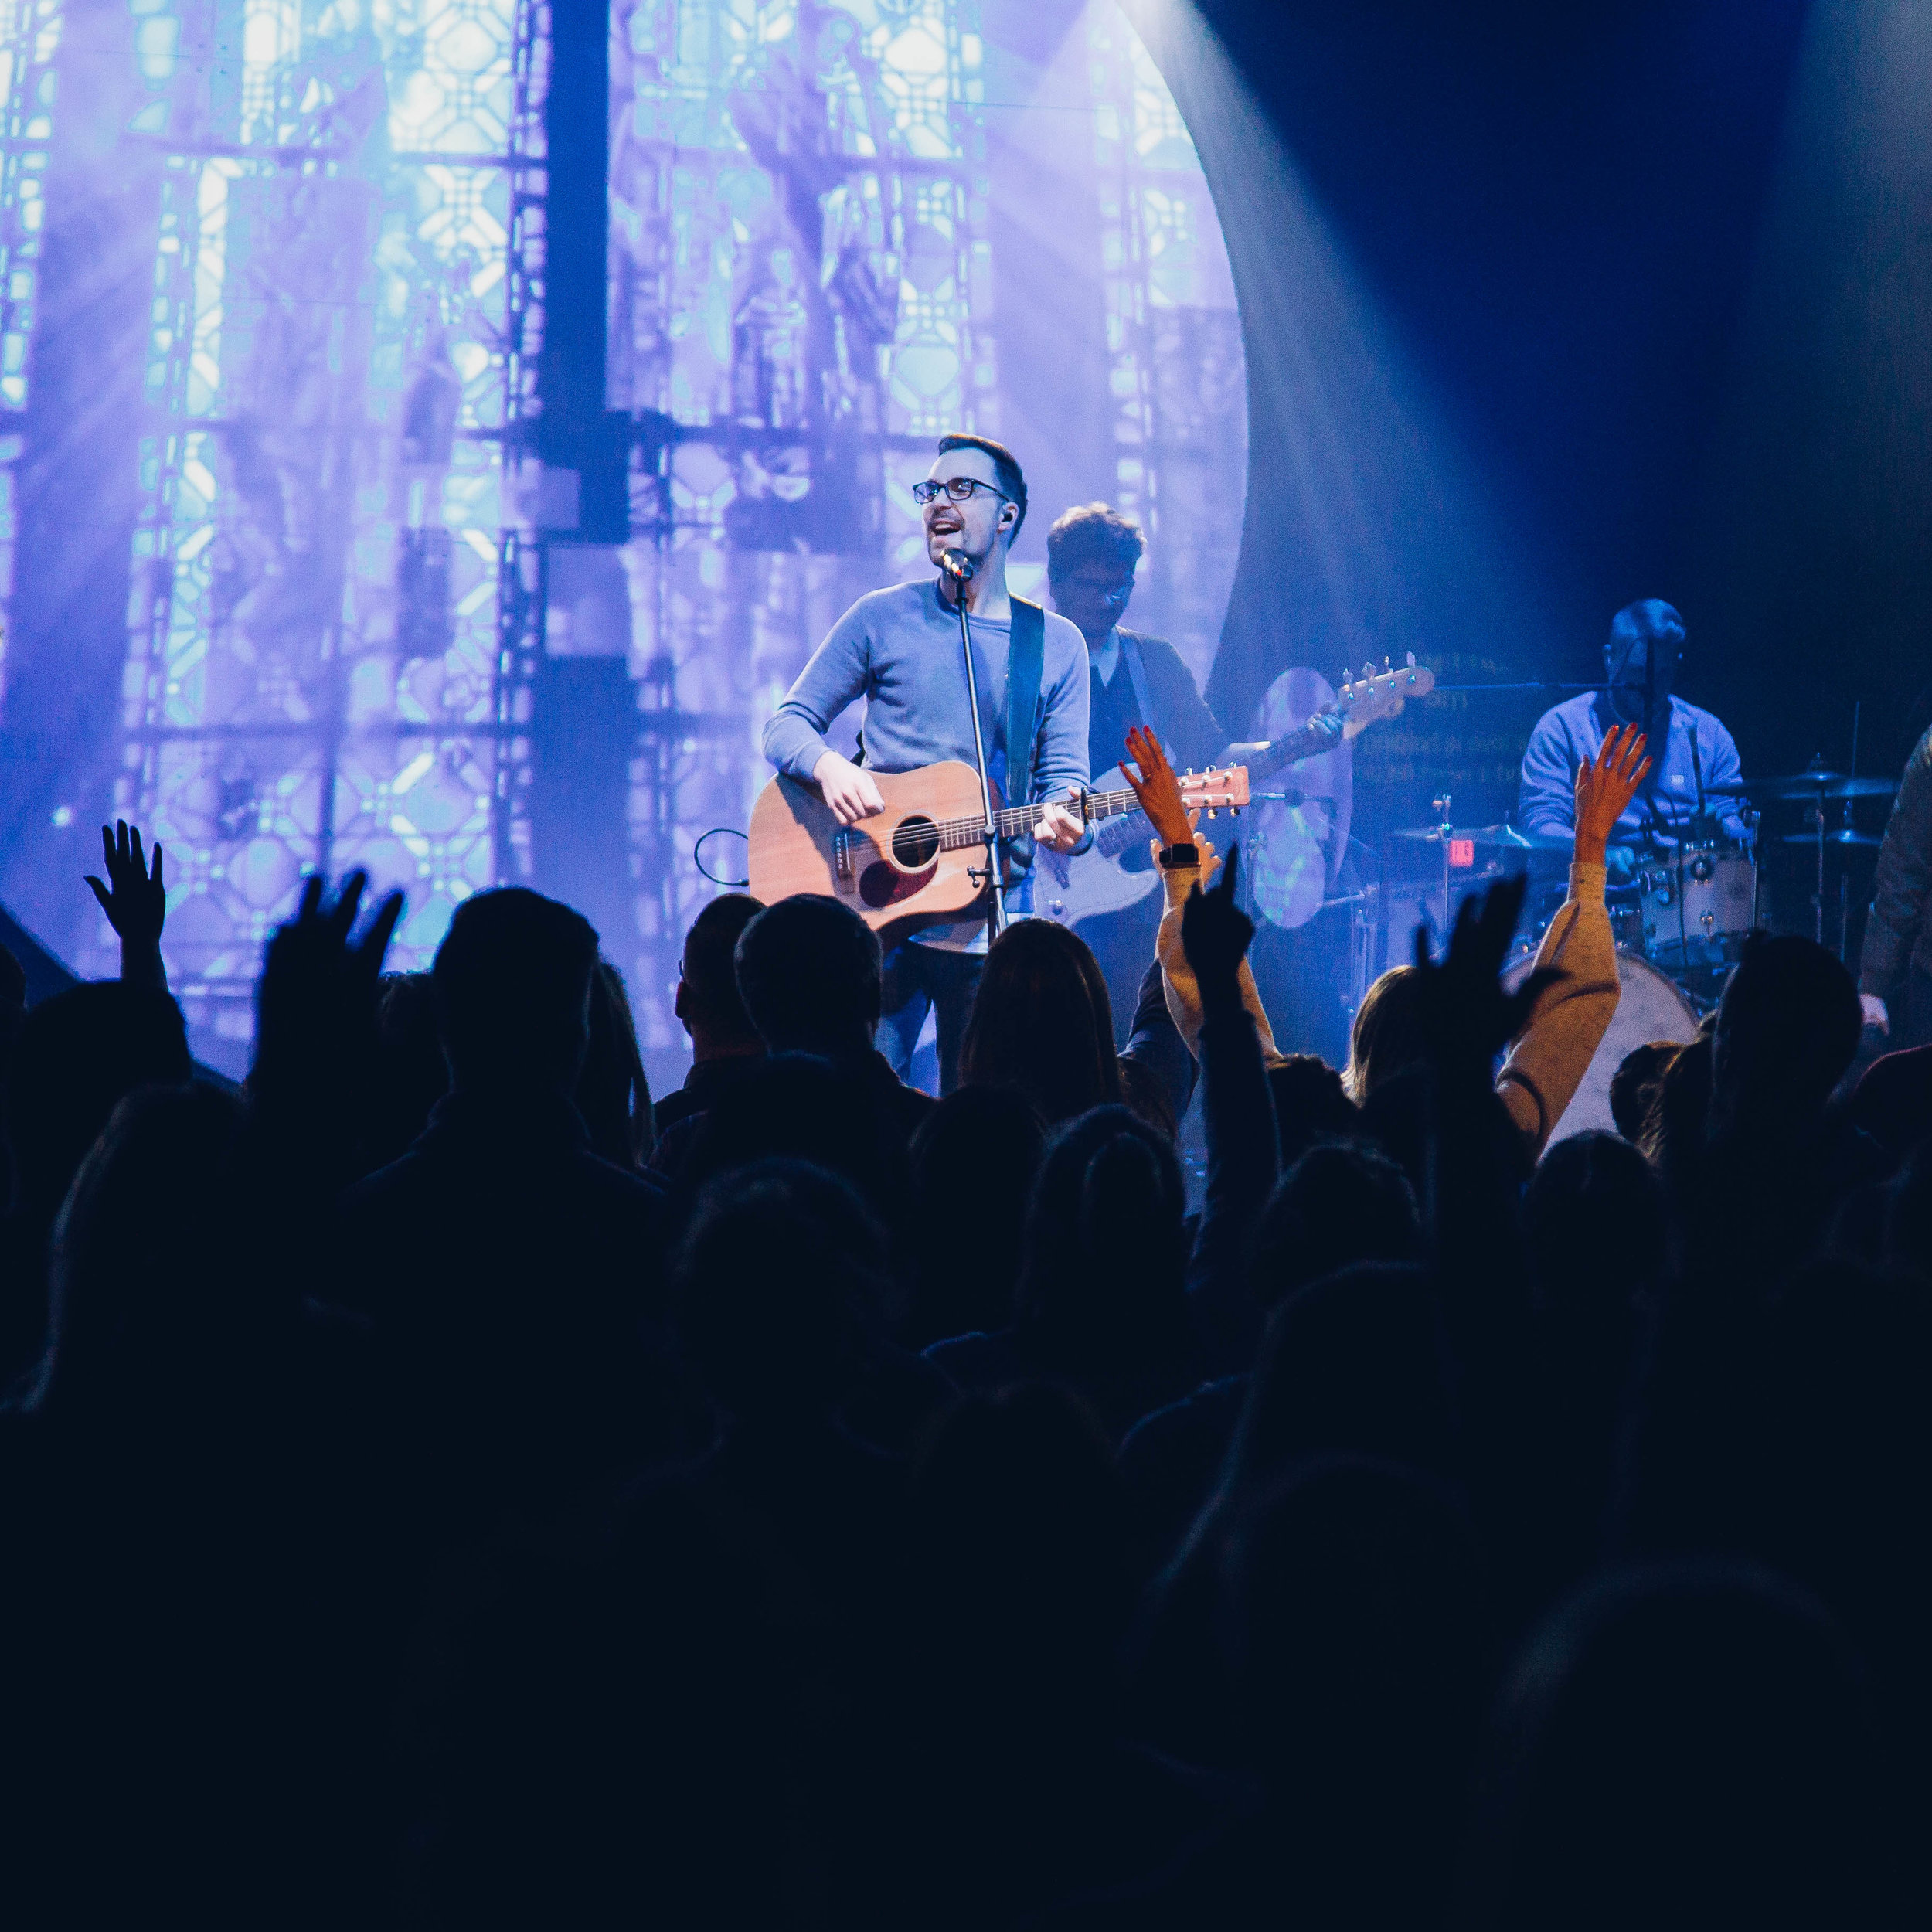 Take the summer off! - There will be no First Wednesday in June or July. Enjoy your summer house parties with friends and family. We'll see you at our Night of Worship, which will take place the first Wednesday in August!